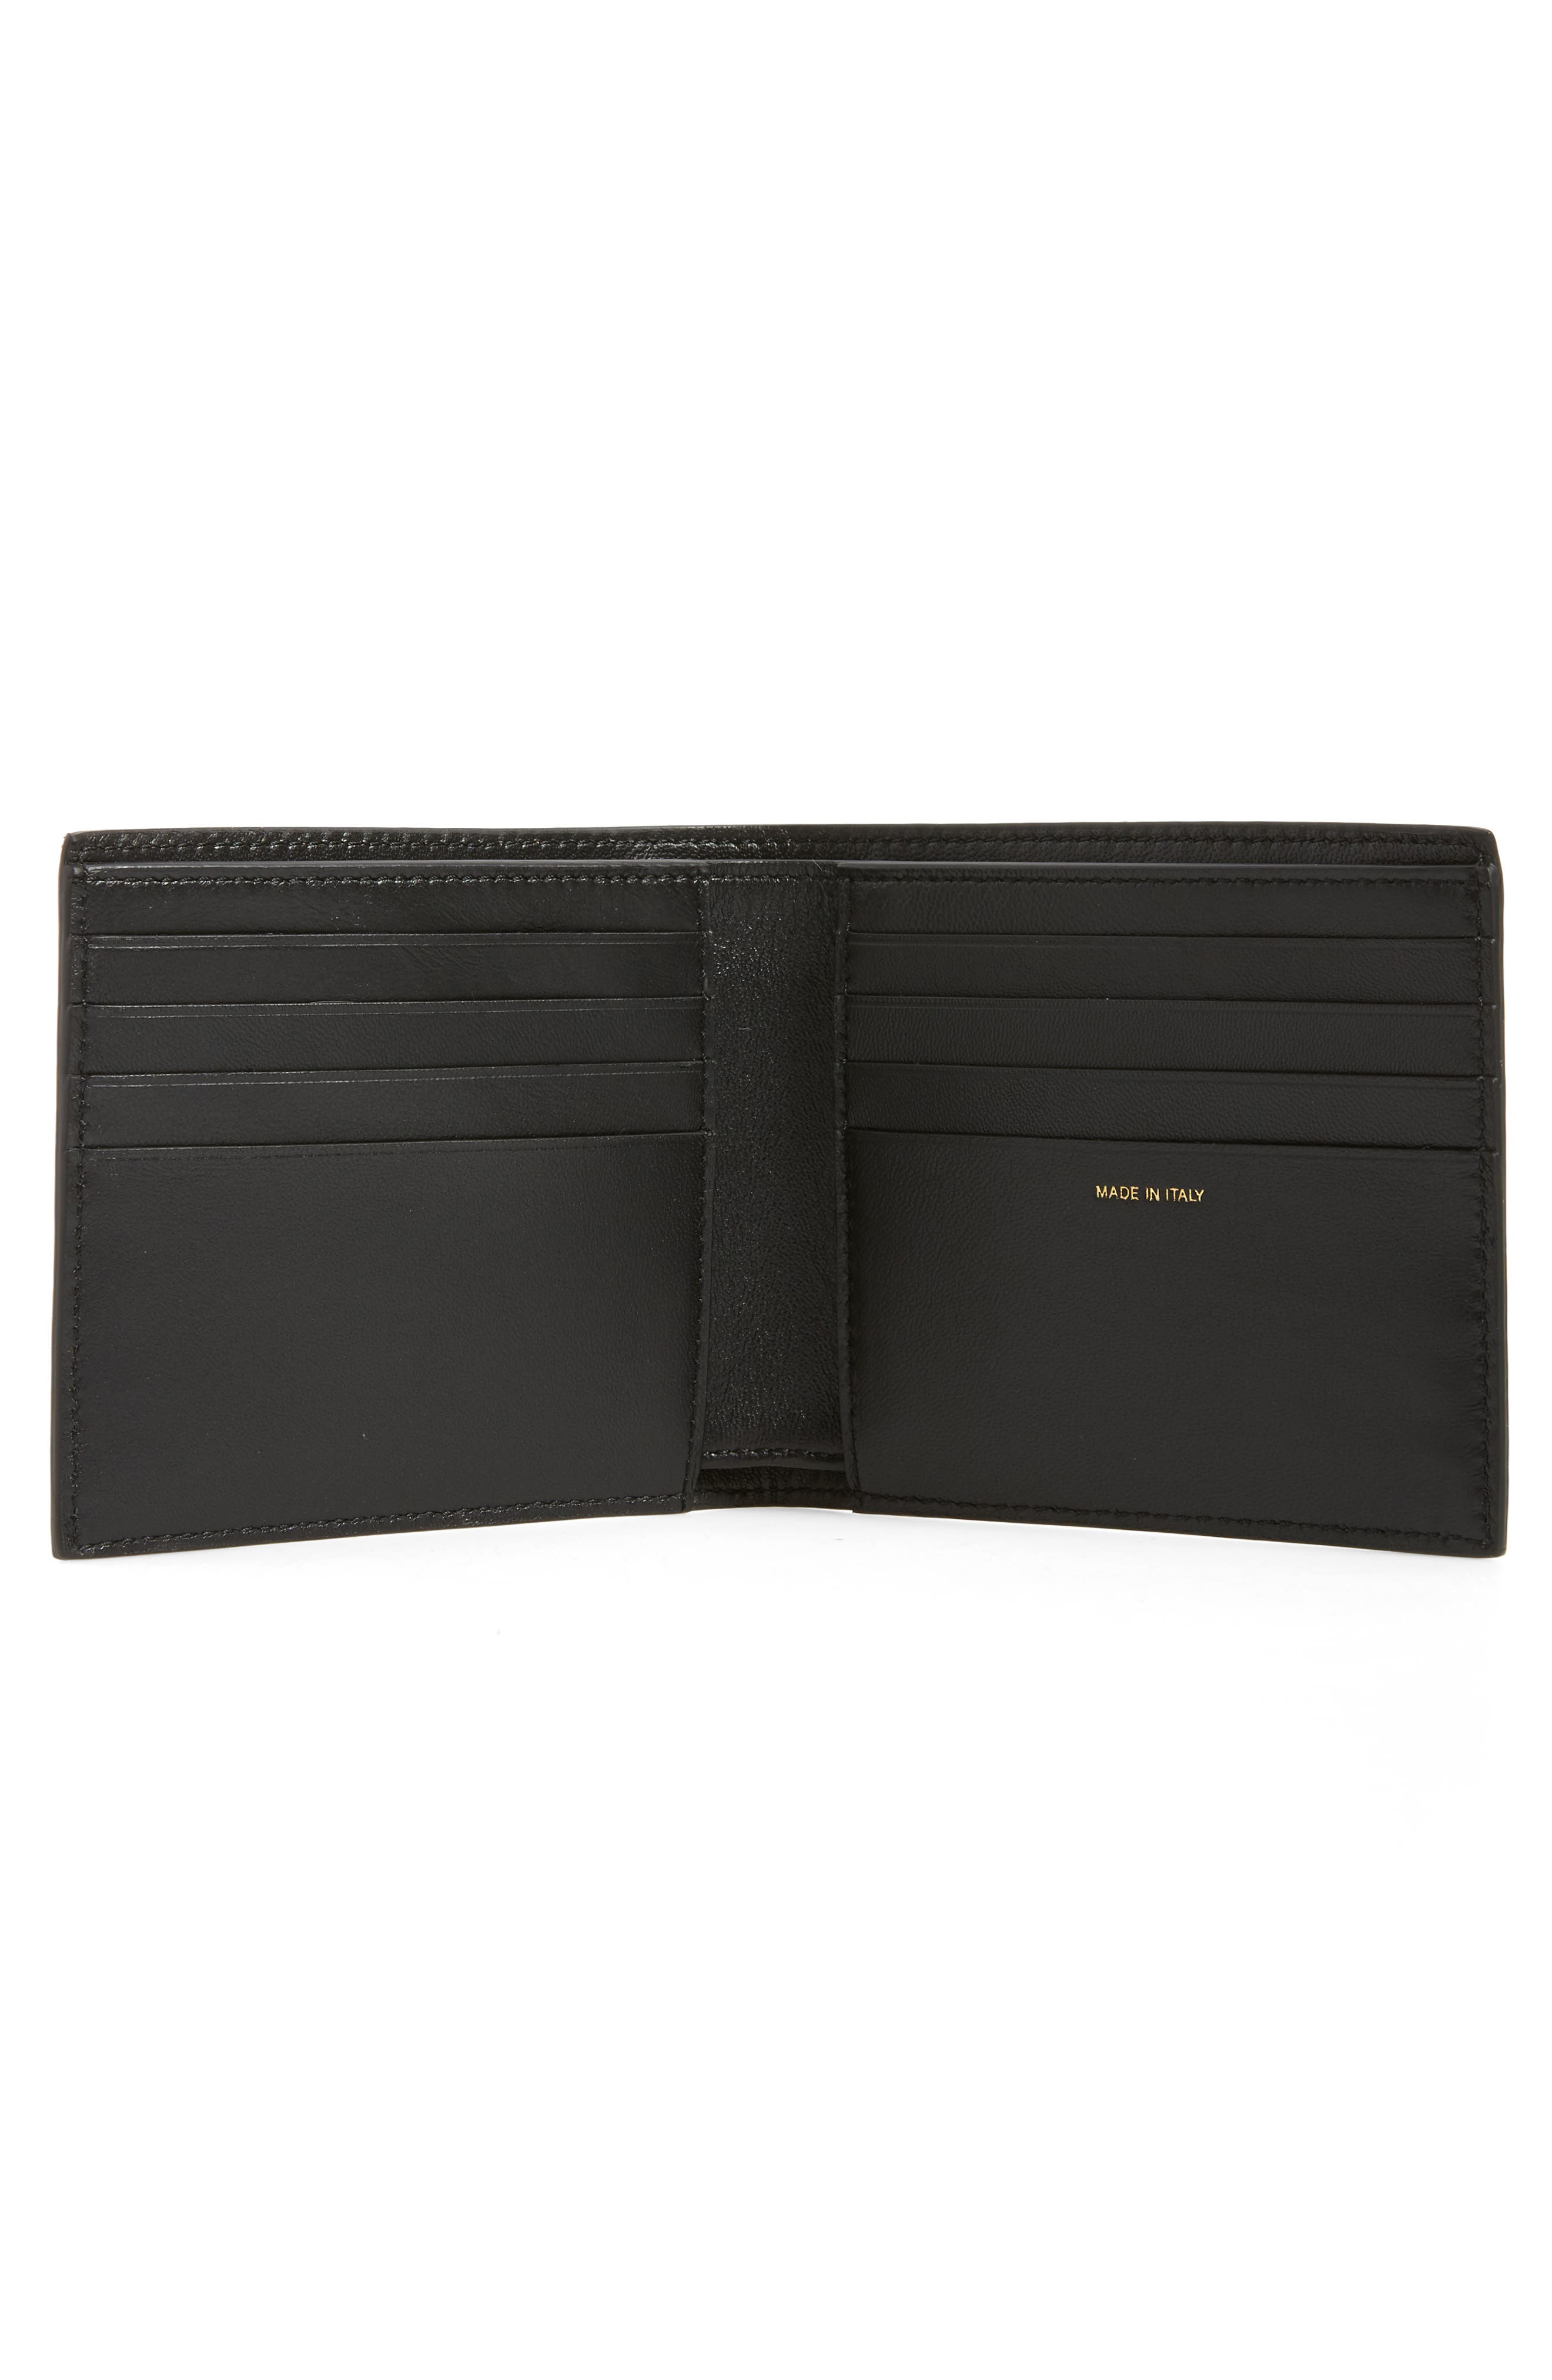 Metallic Leather Wallet,                             Alternate thumbnail 2, color,                             710